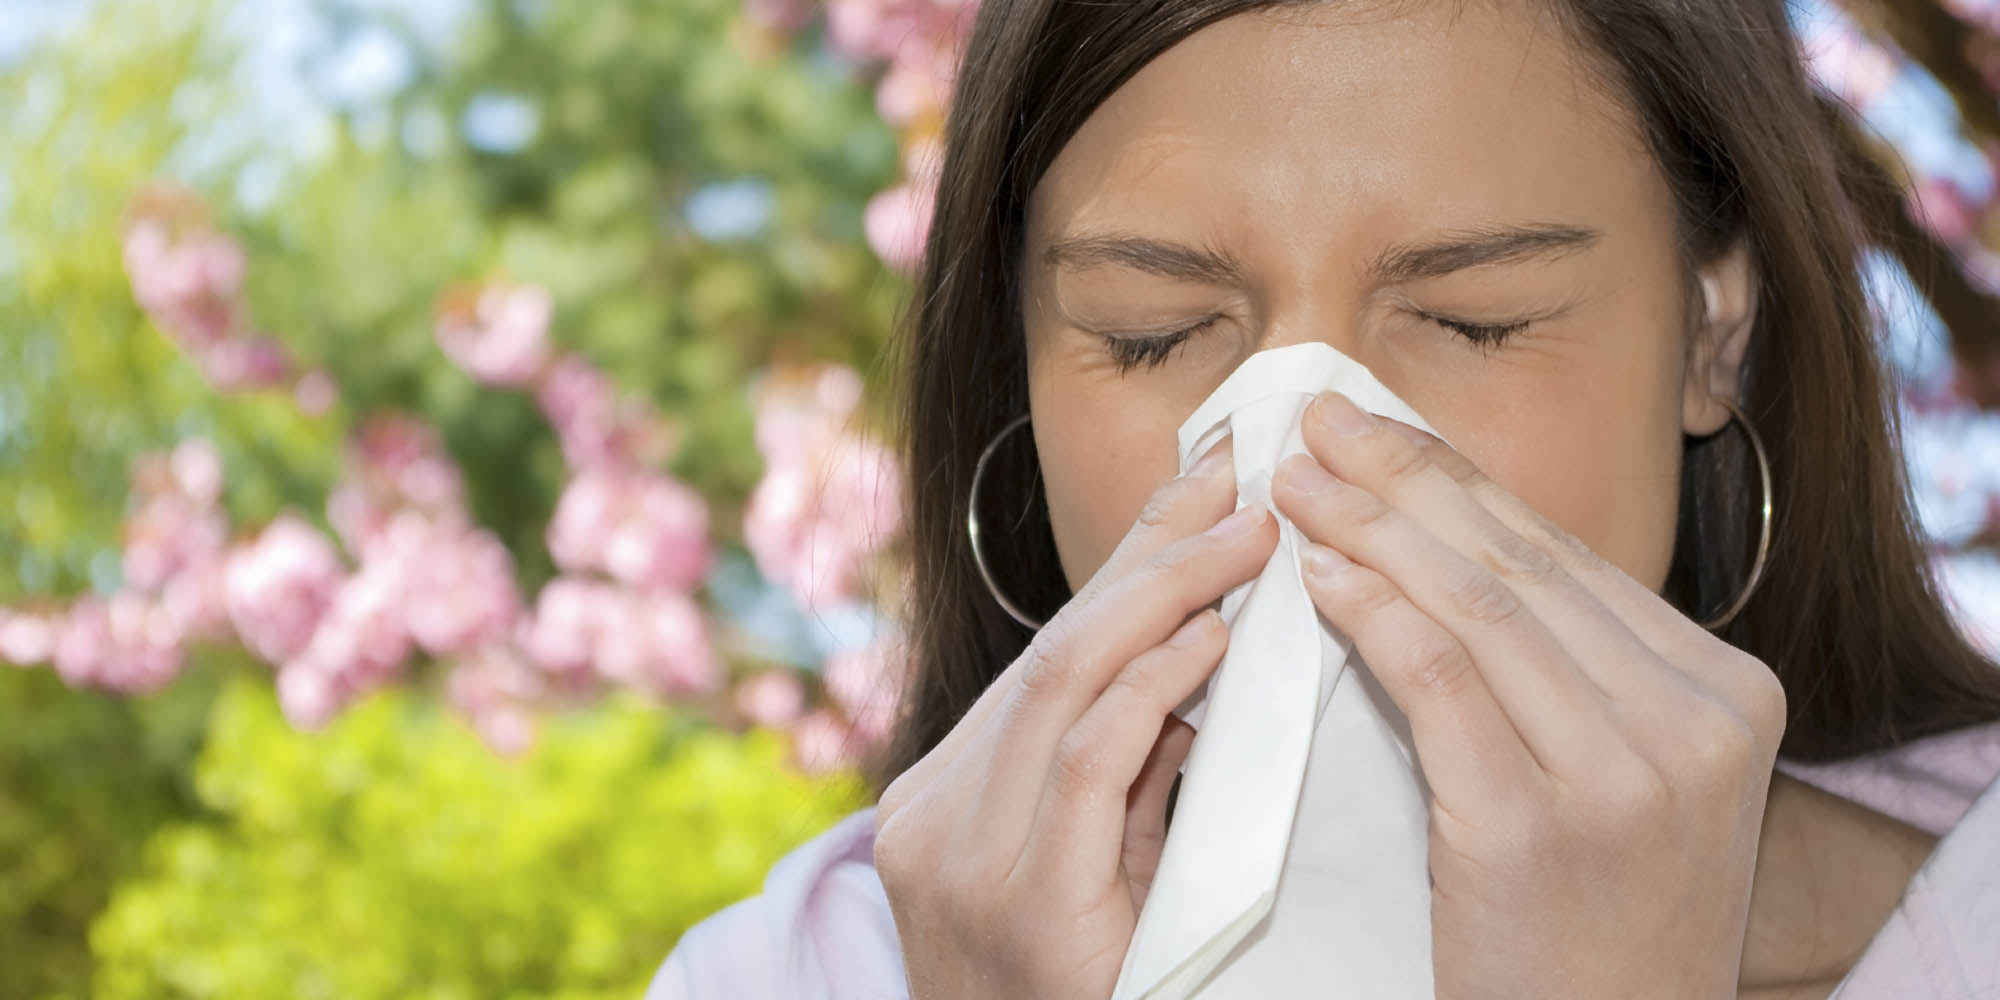 6 Ways to Relieve Spring Allergies